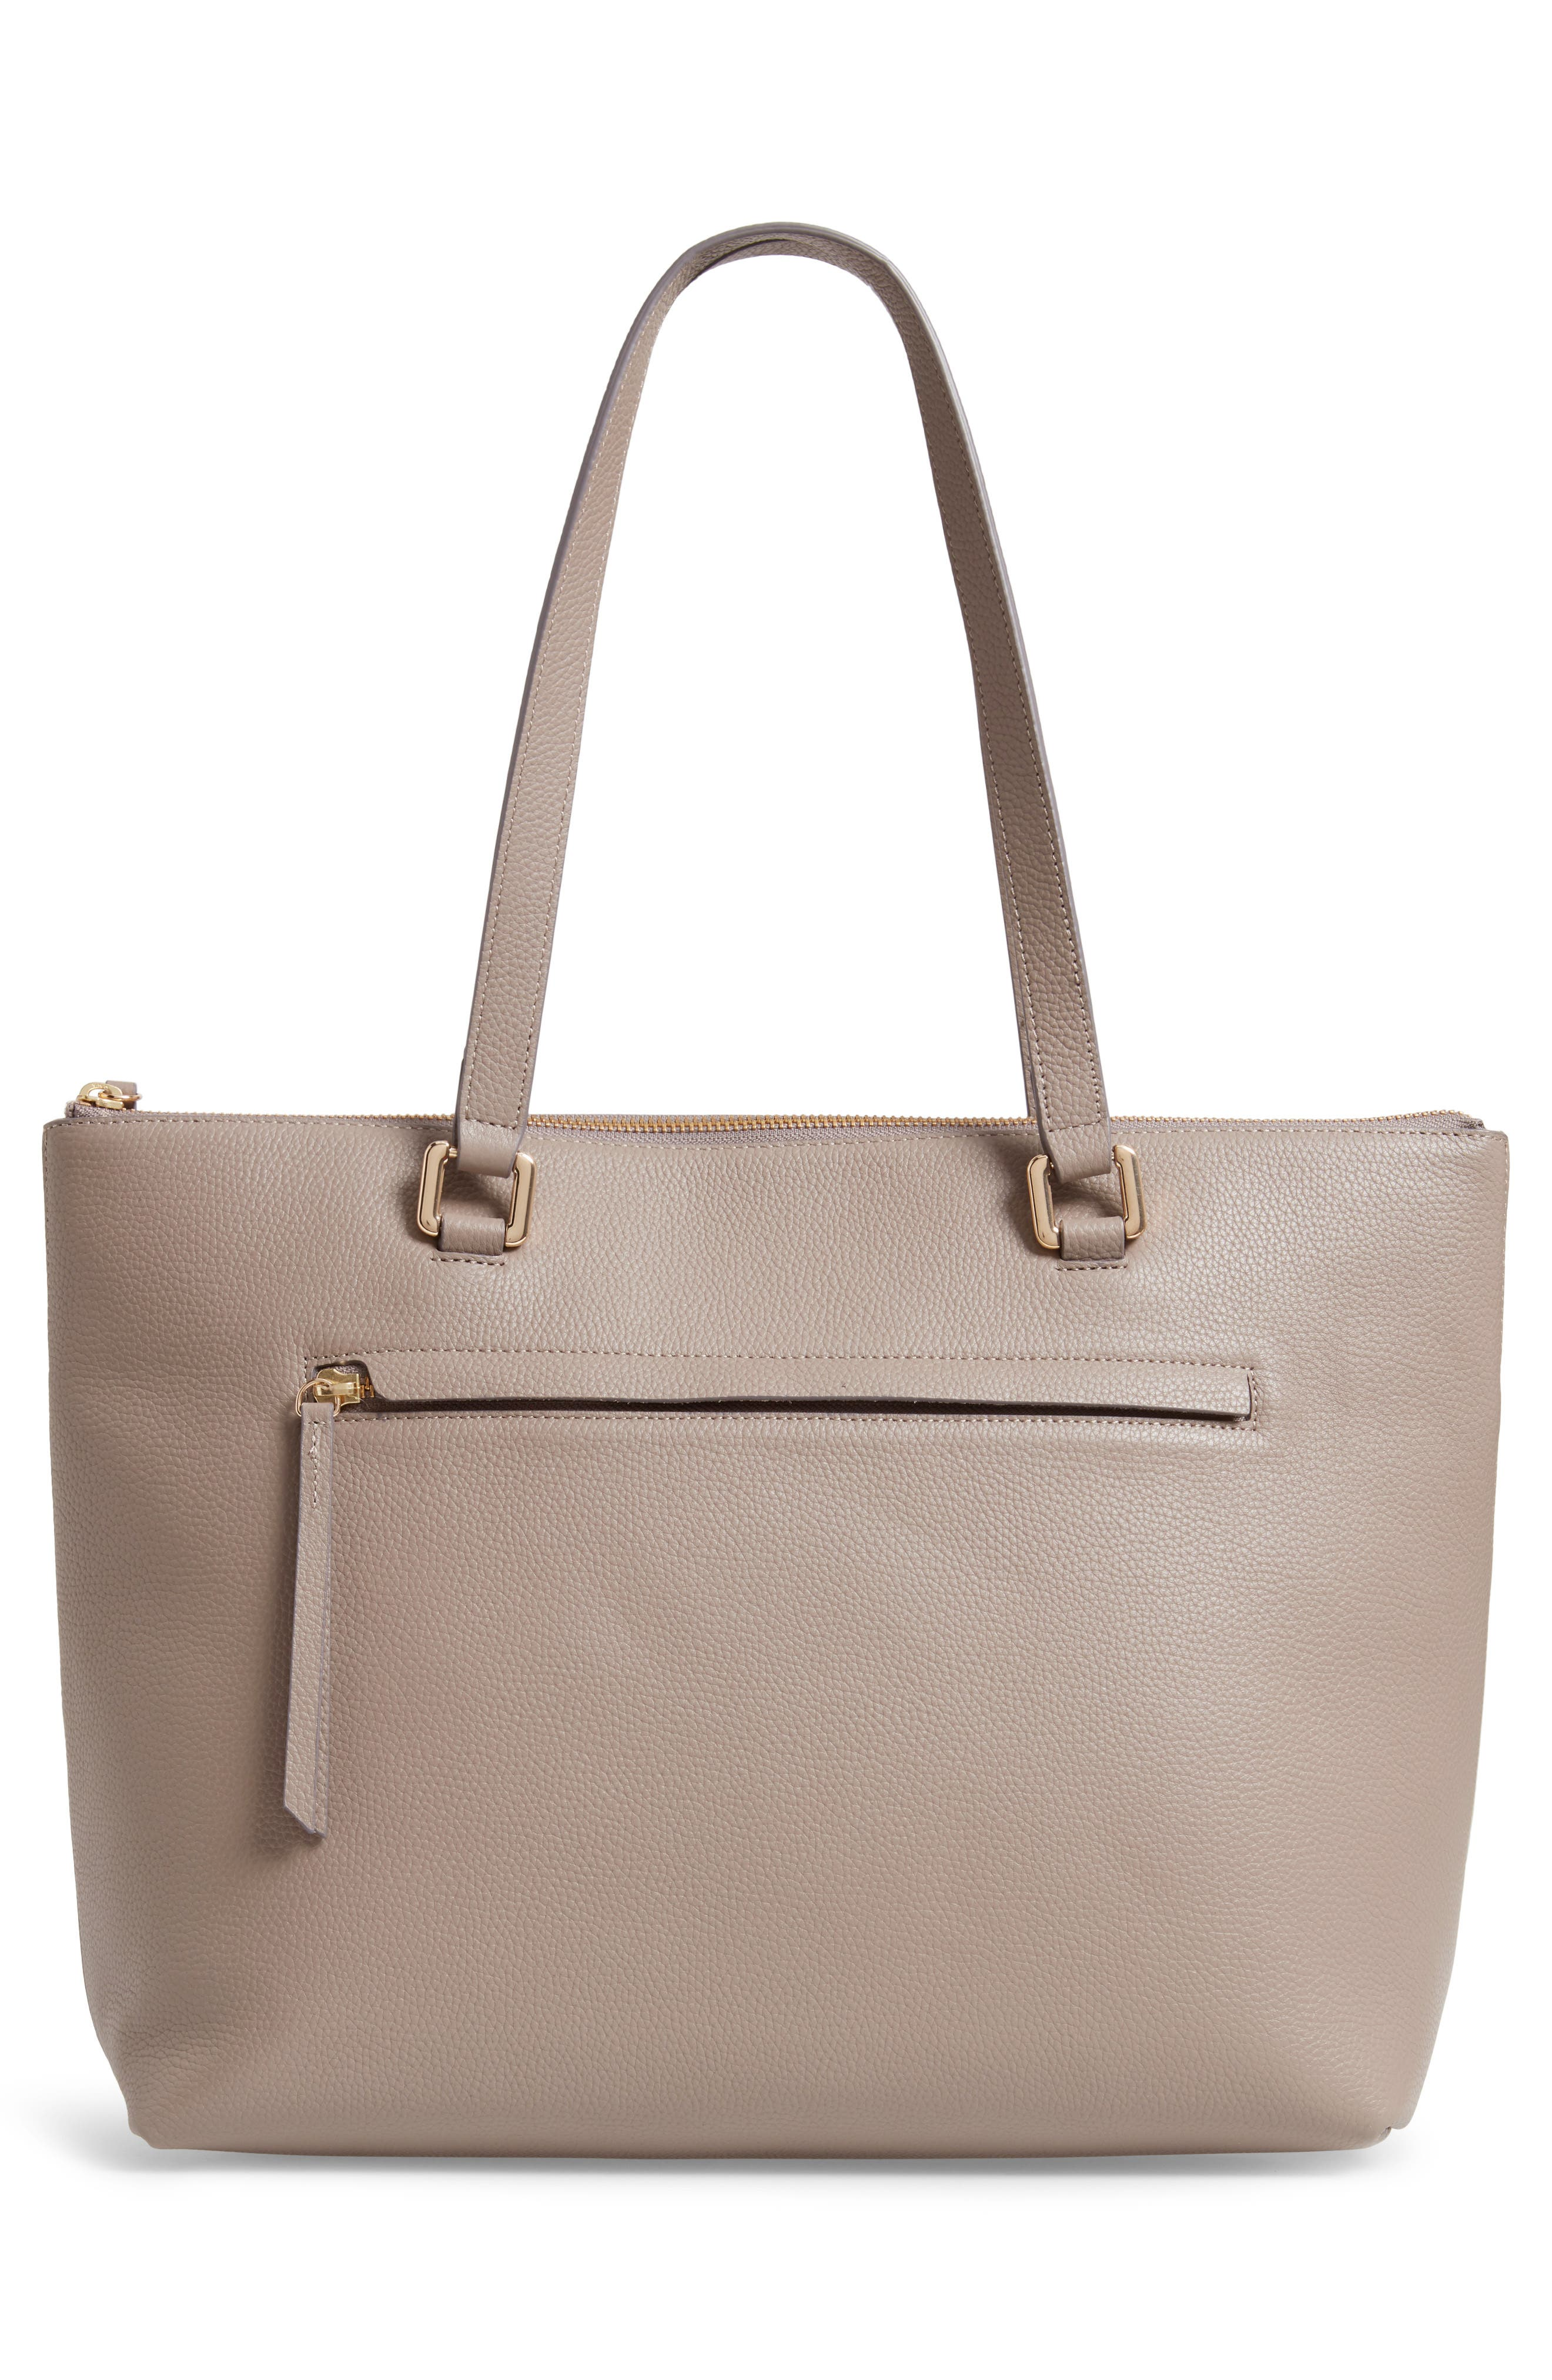 NORDSTROM, Lexa Pebbled Leather Tote, Alternate thumbnail 4, color, GREY TAUPE